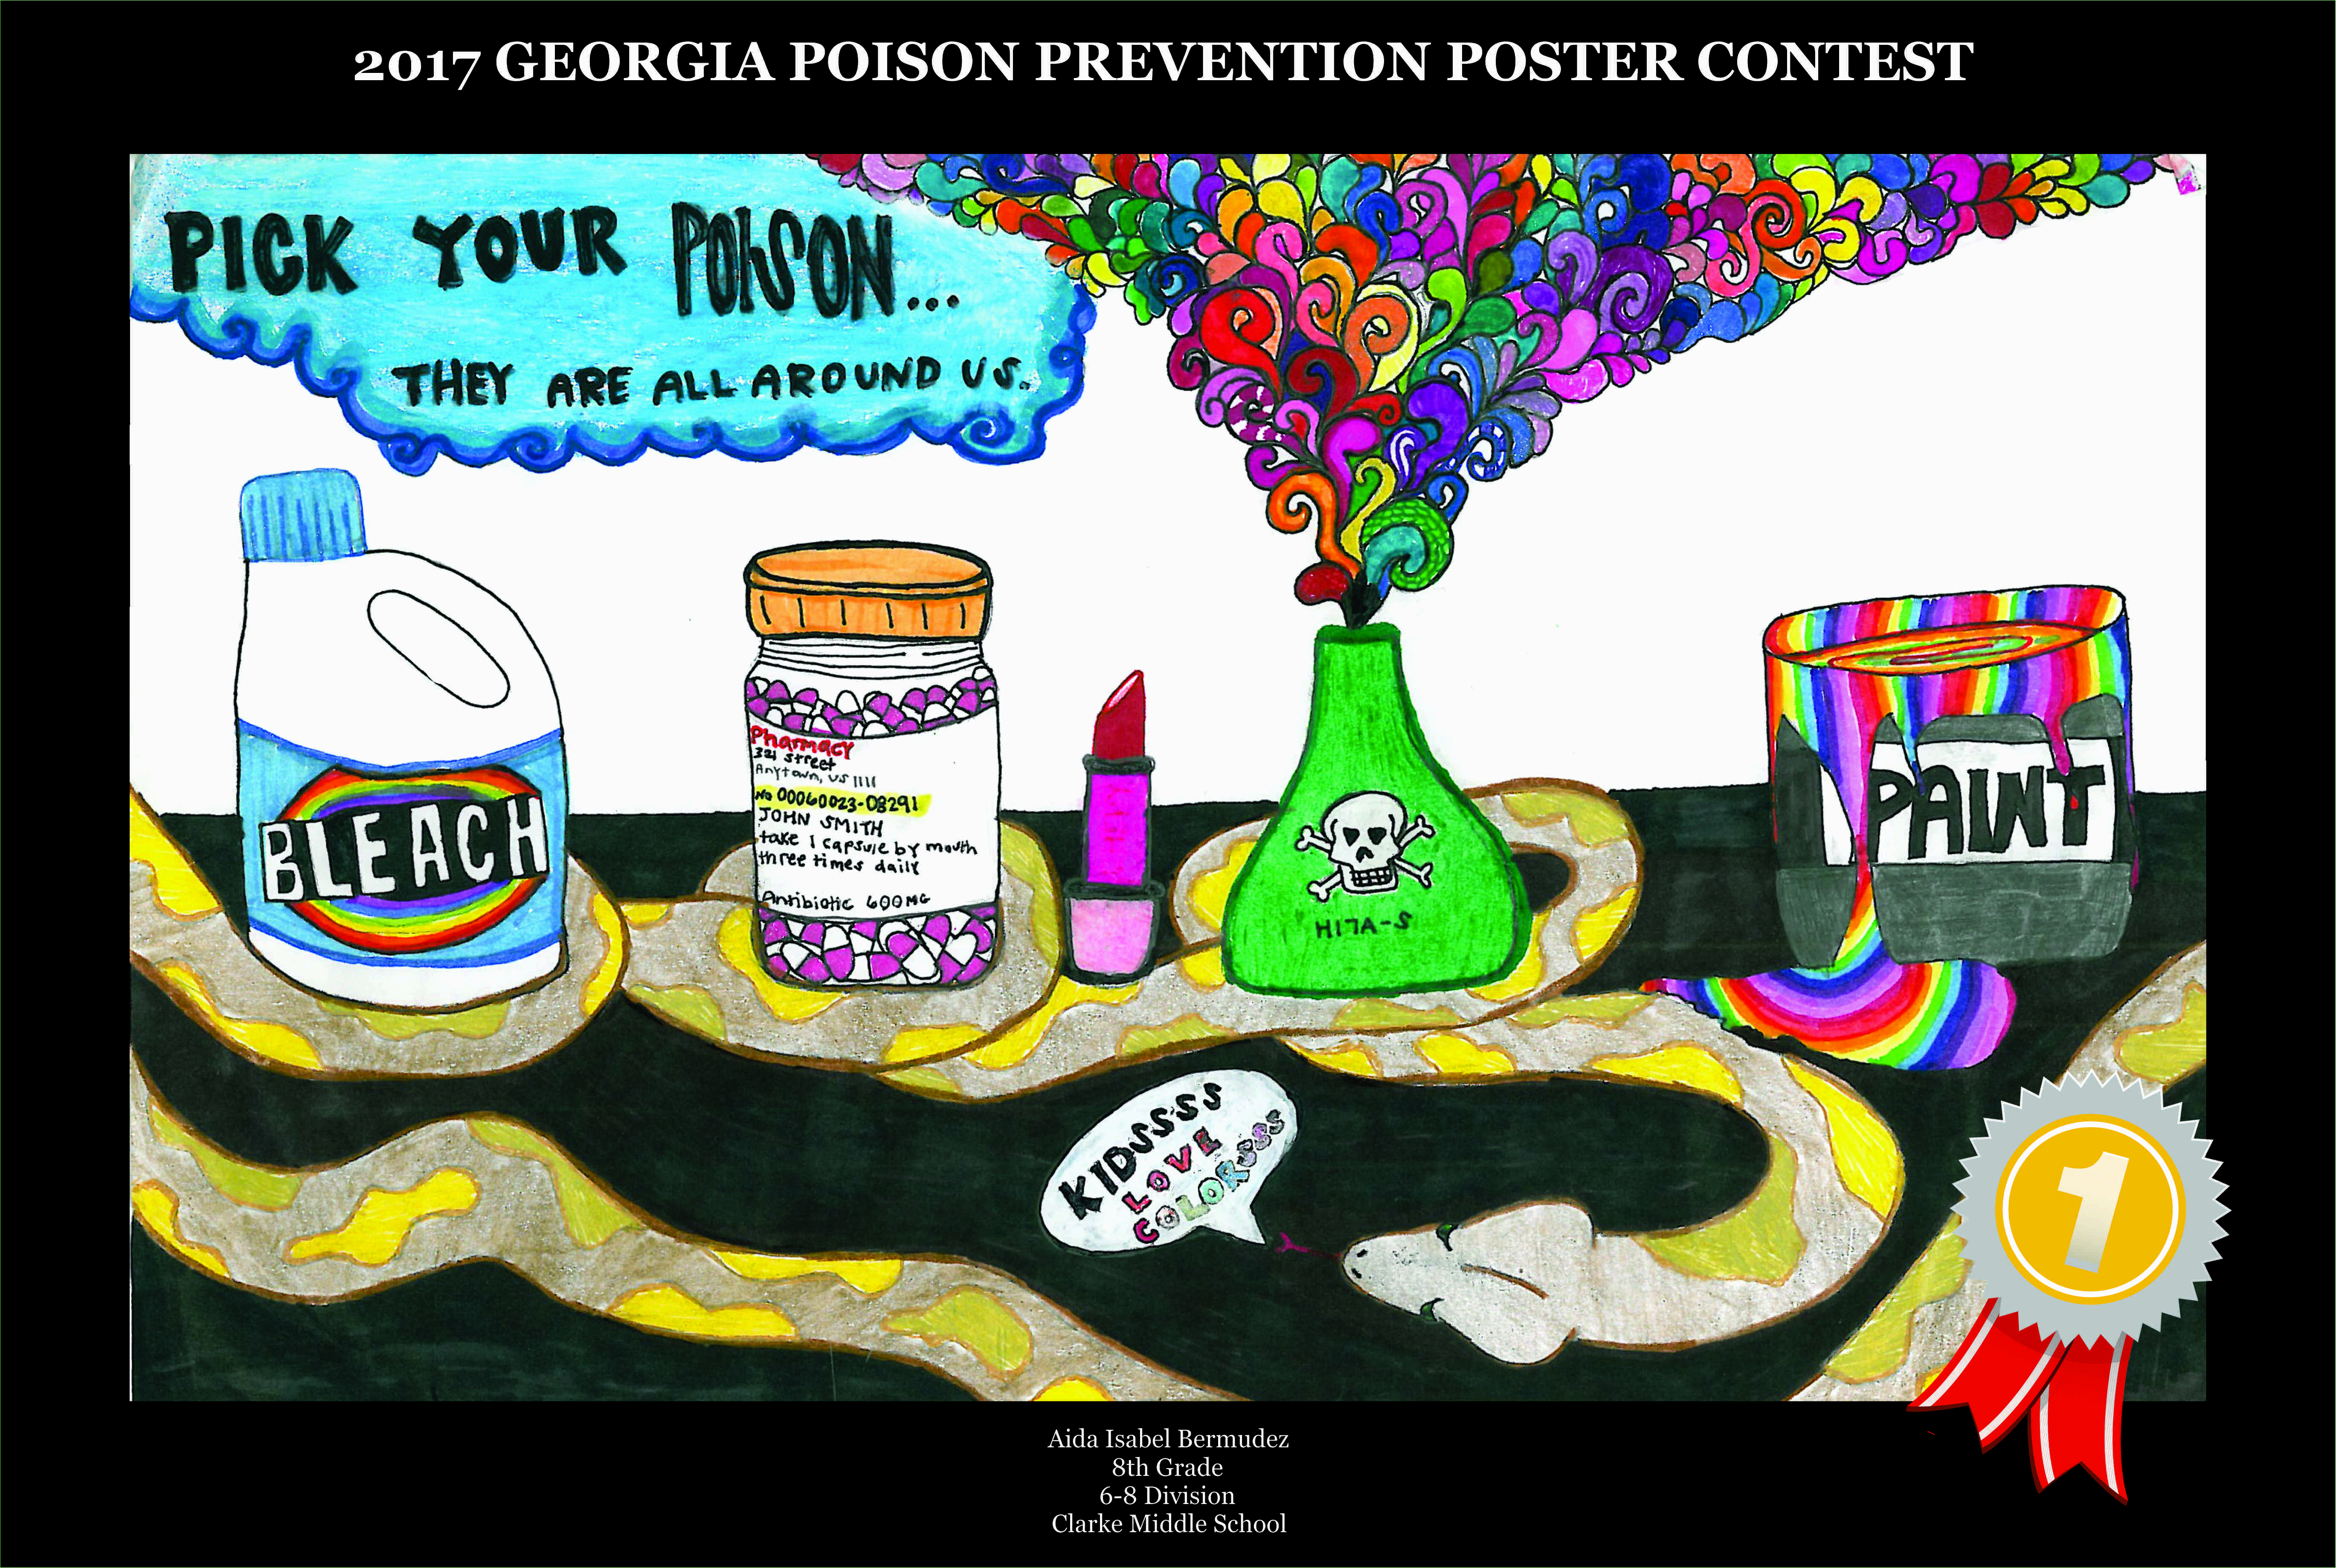 Communication on this topic: Poison Prevention, poison-prevention/